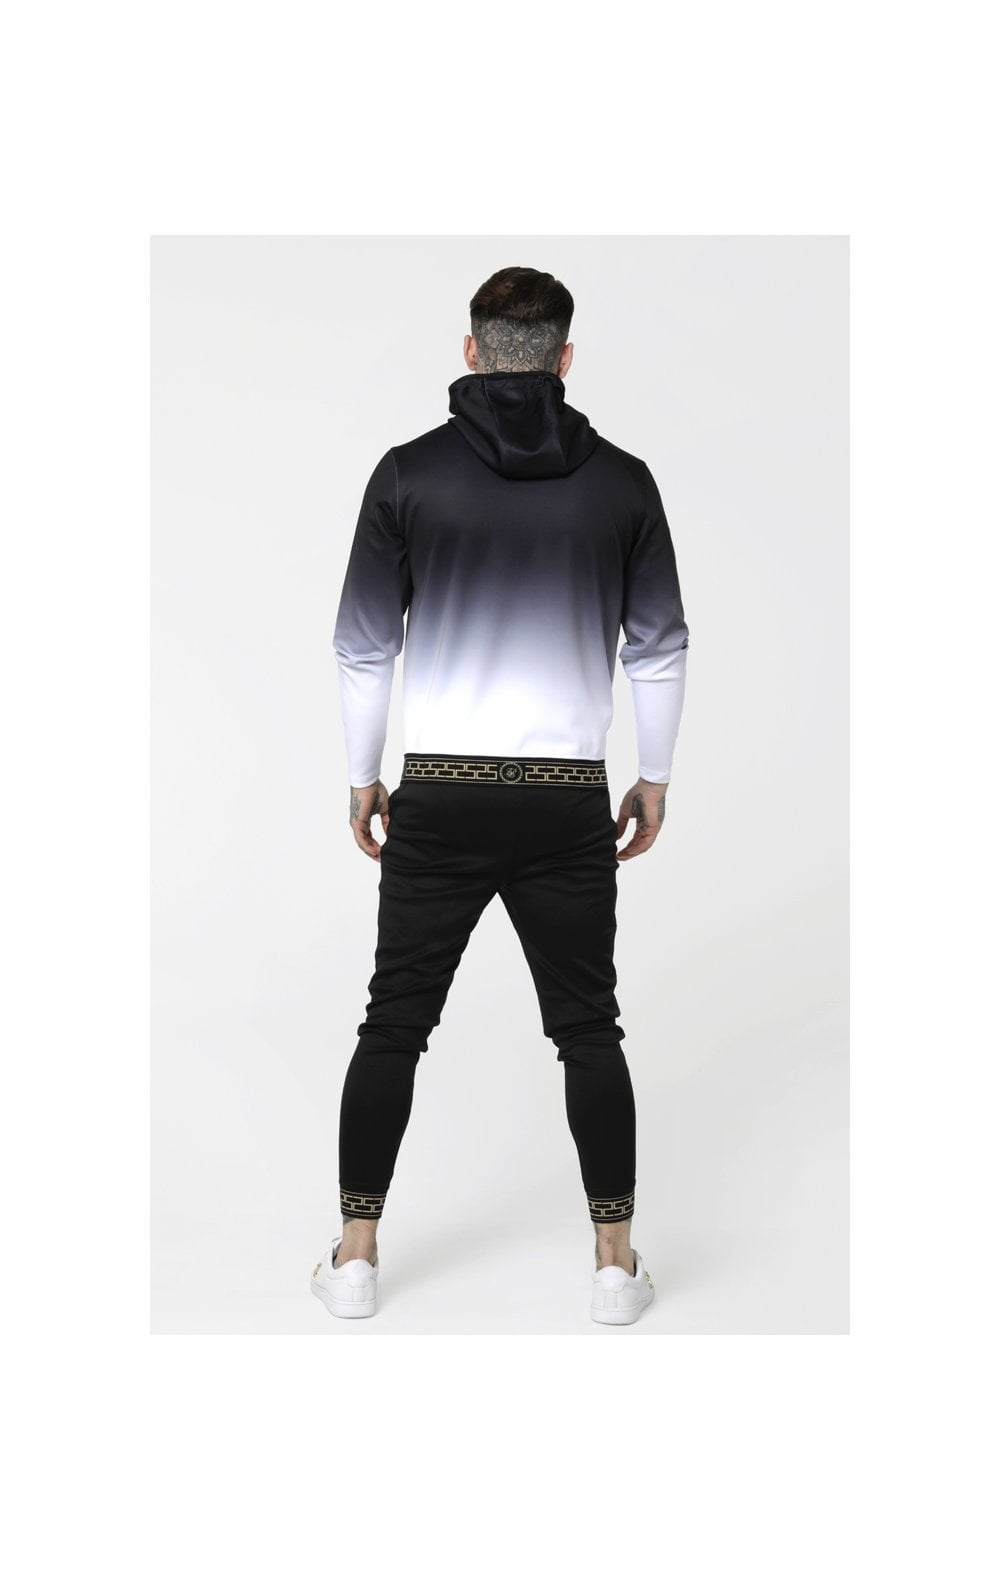 Load image into Gallery viewer, SikSilk Agility Zip Through Hoodie - Black & White (6)